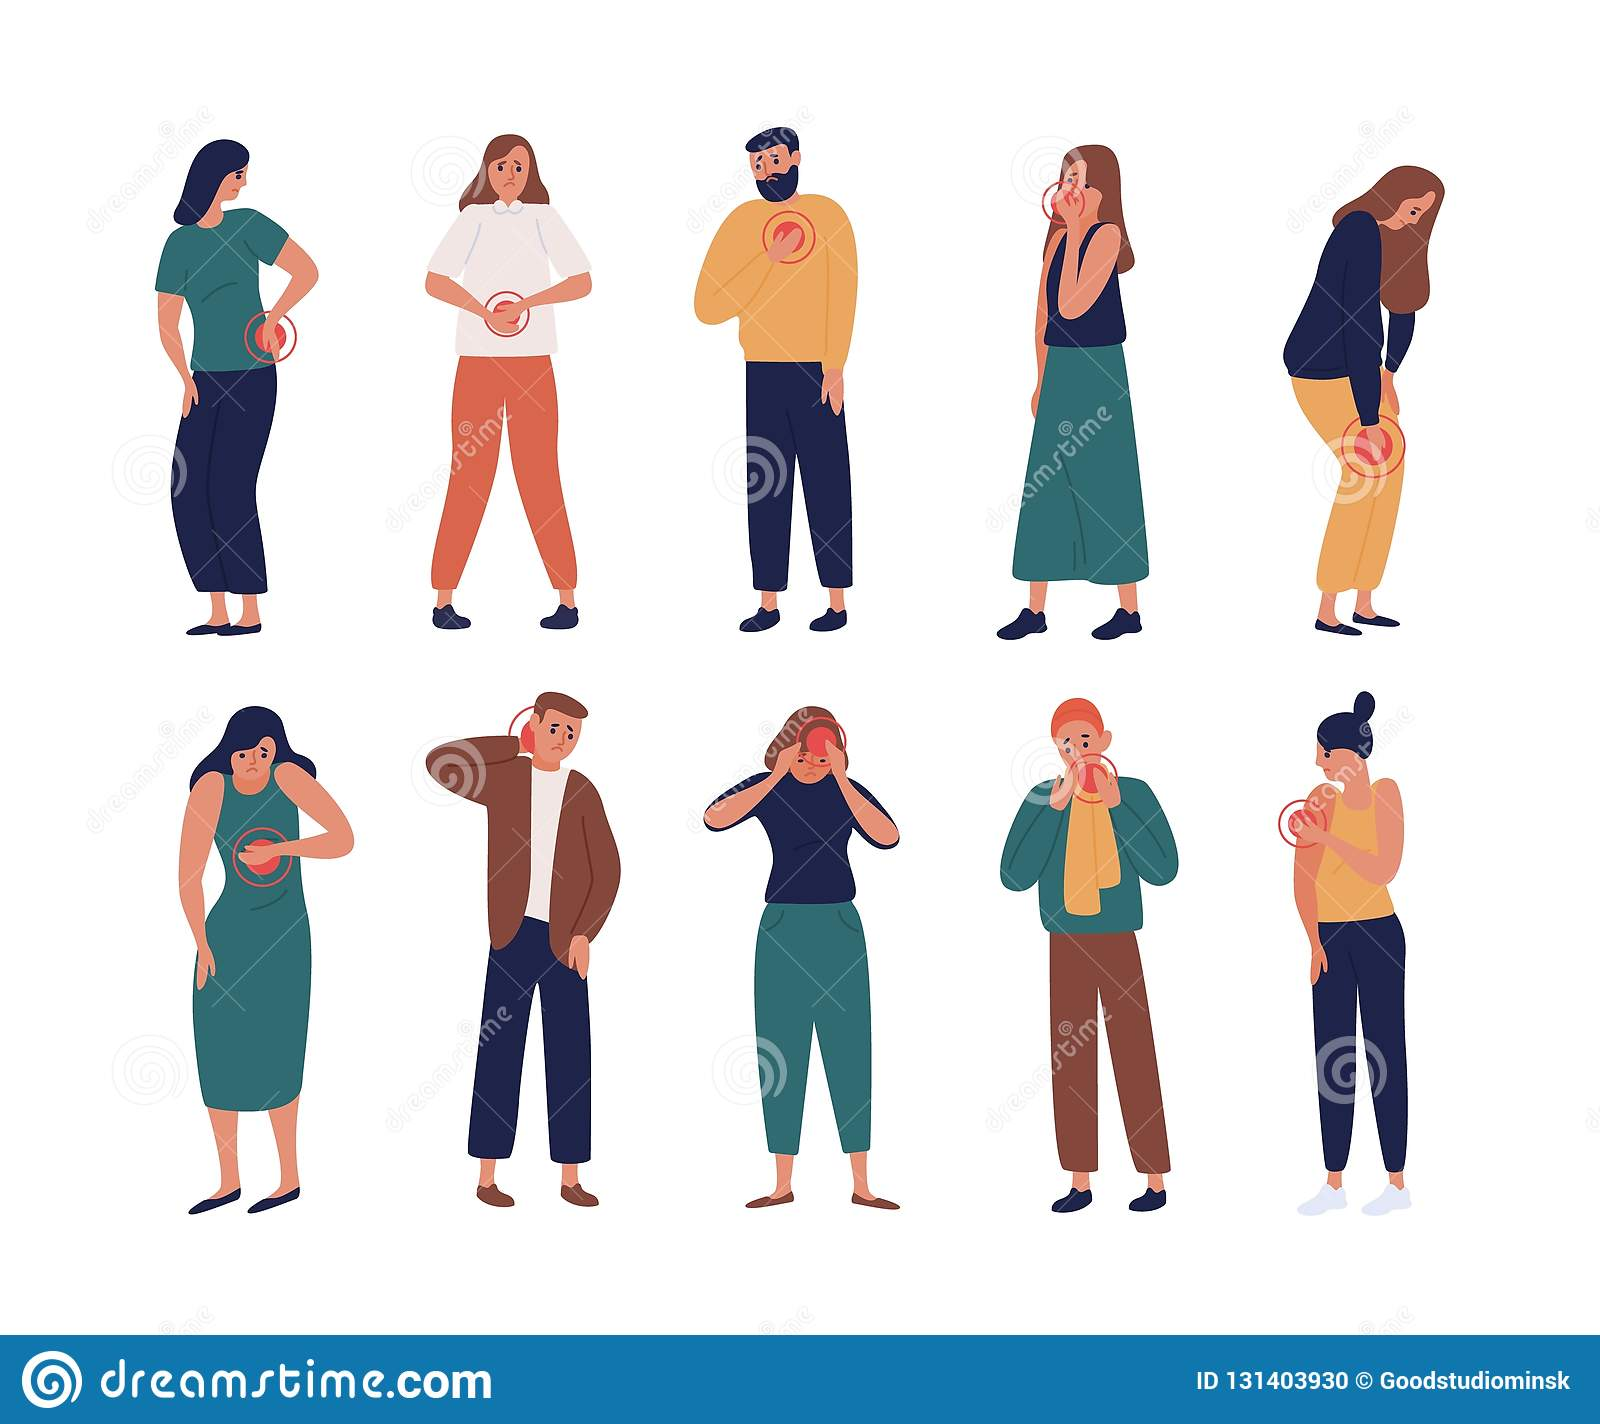 Collection of unhappy people suffering pain or ache in different body parts - chest, neck, leg, back, arm. Set of ill